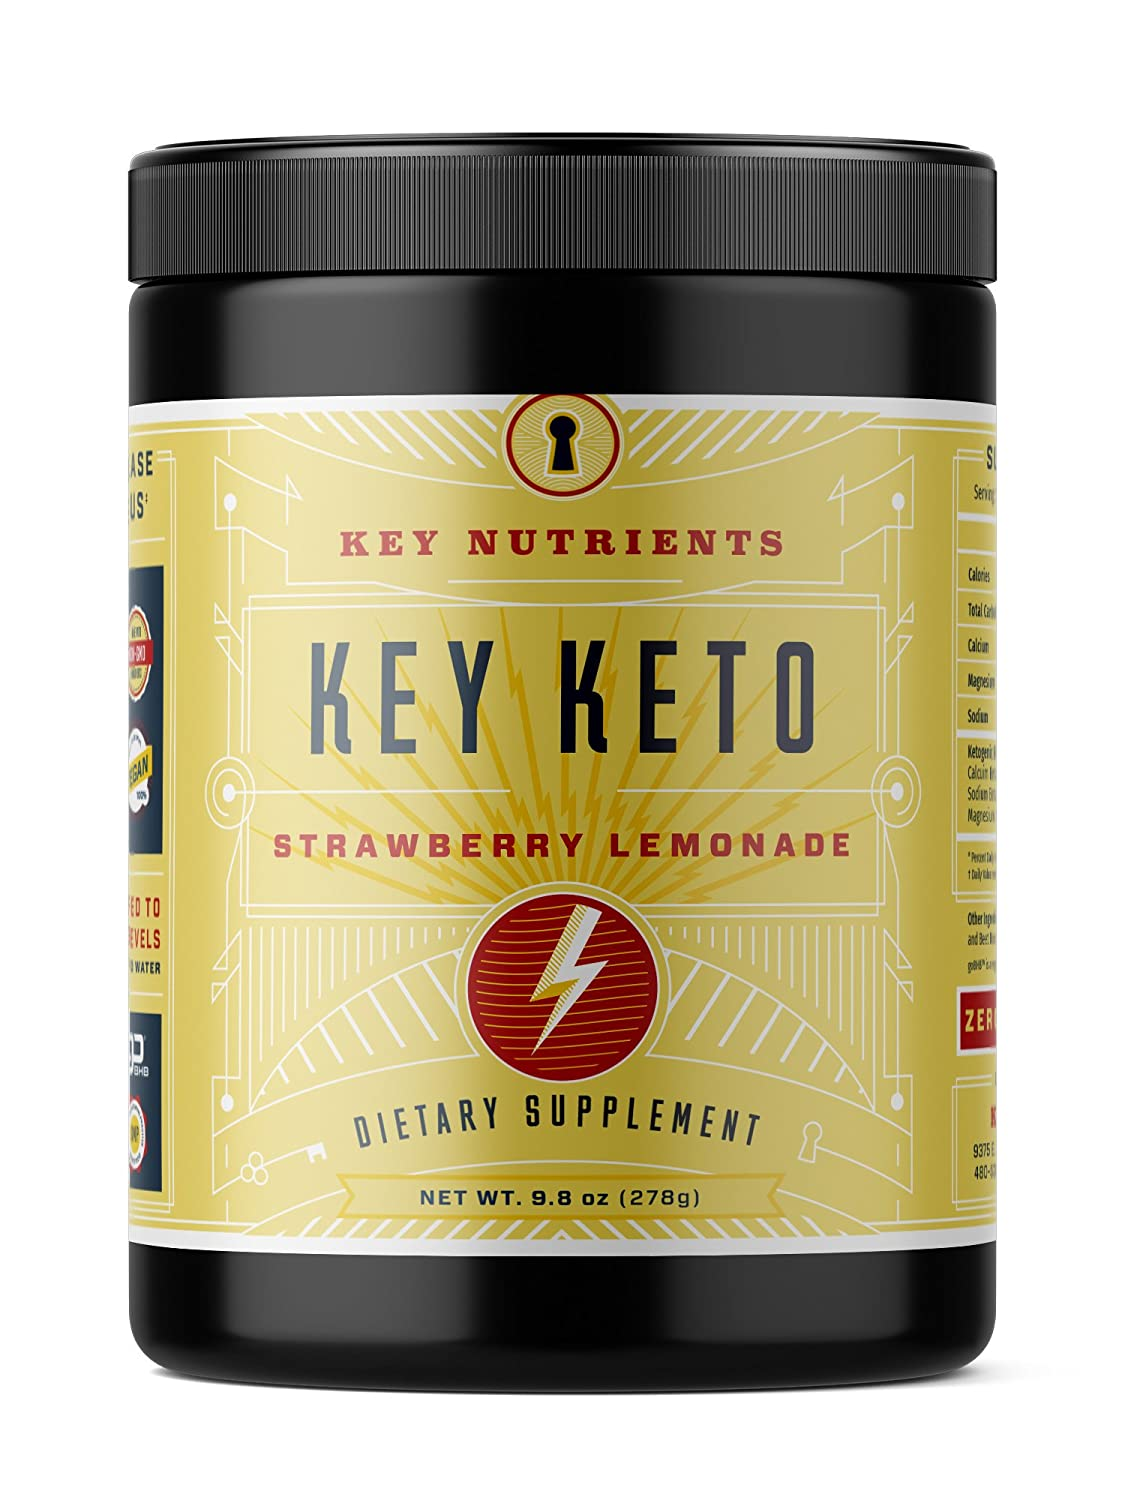 Exogenous Ketone Supplement, KEY KETO Patented BHB Salts Beta-Hydroxybutyrate – Formulated for Ketosis, to Burn Fat, Increase Energy and Focus, Supports a Keto Diet. Strawberry Lemonade 278g 20